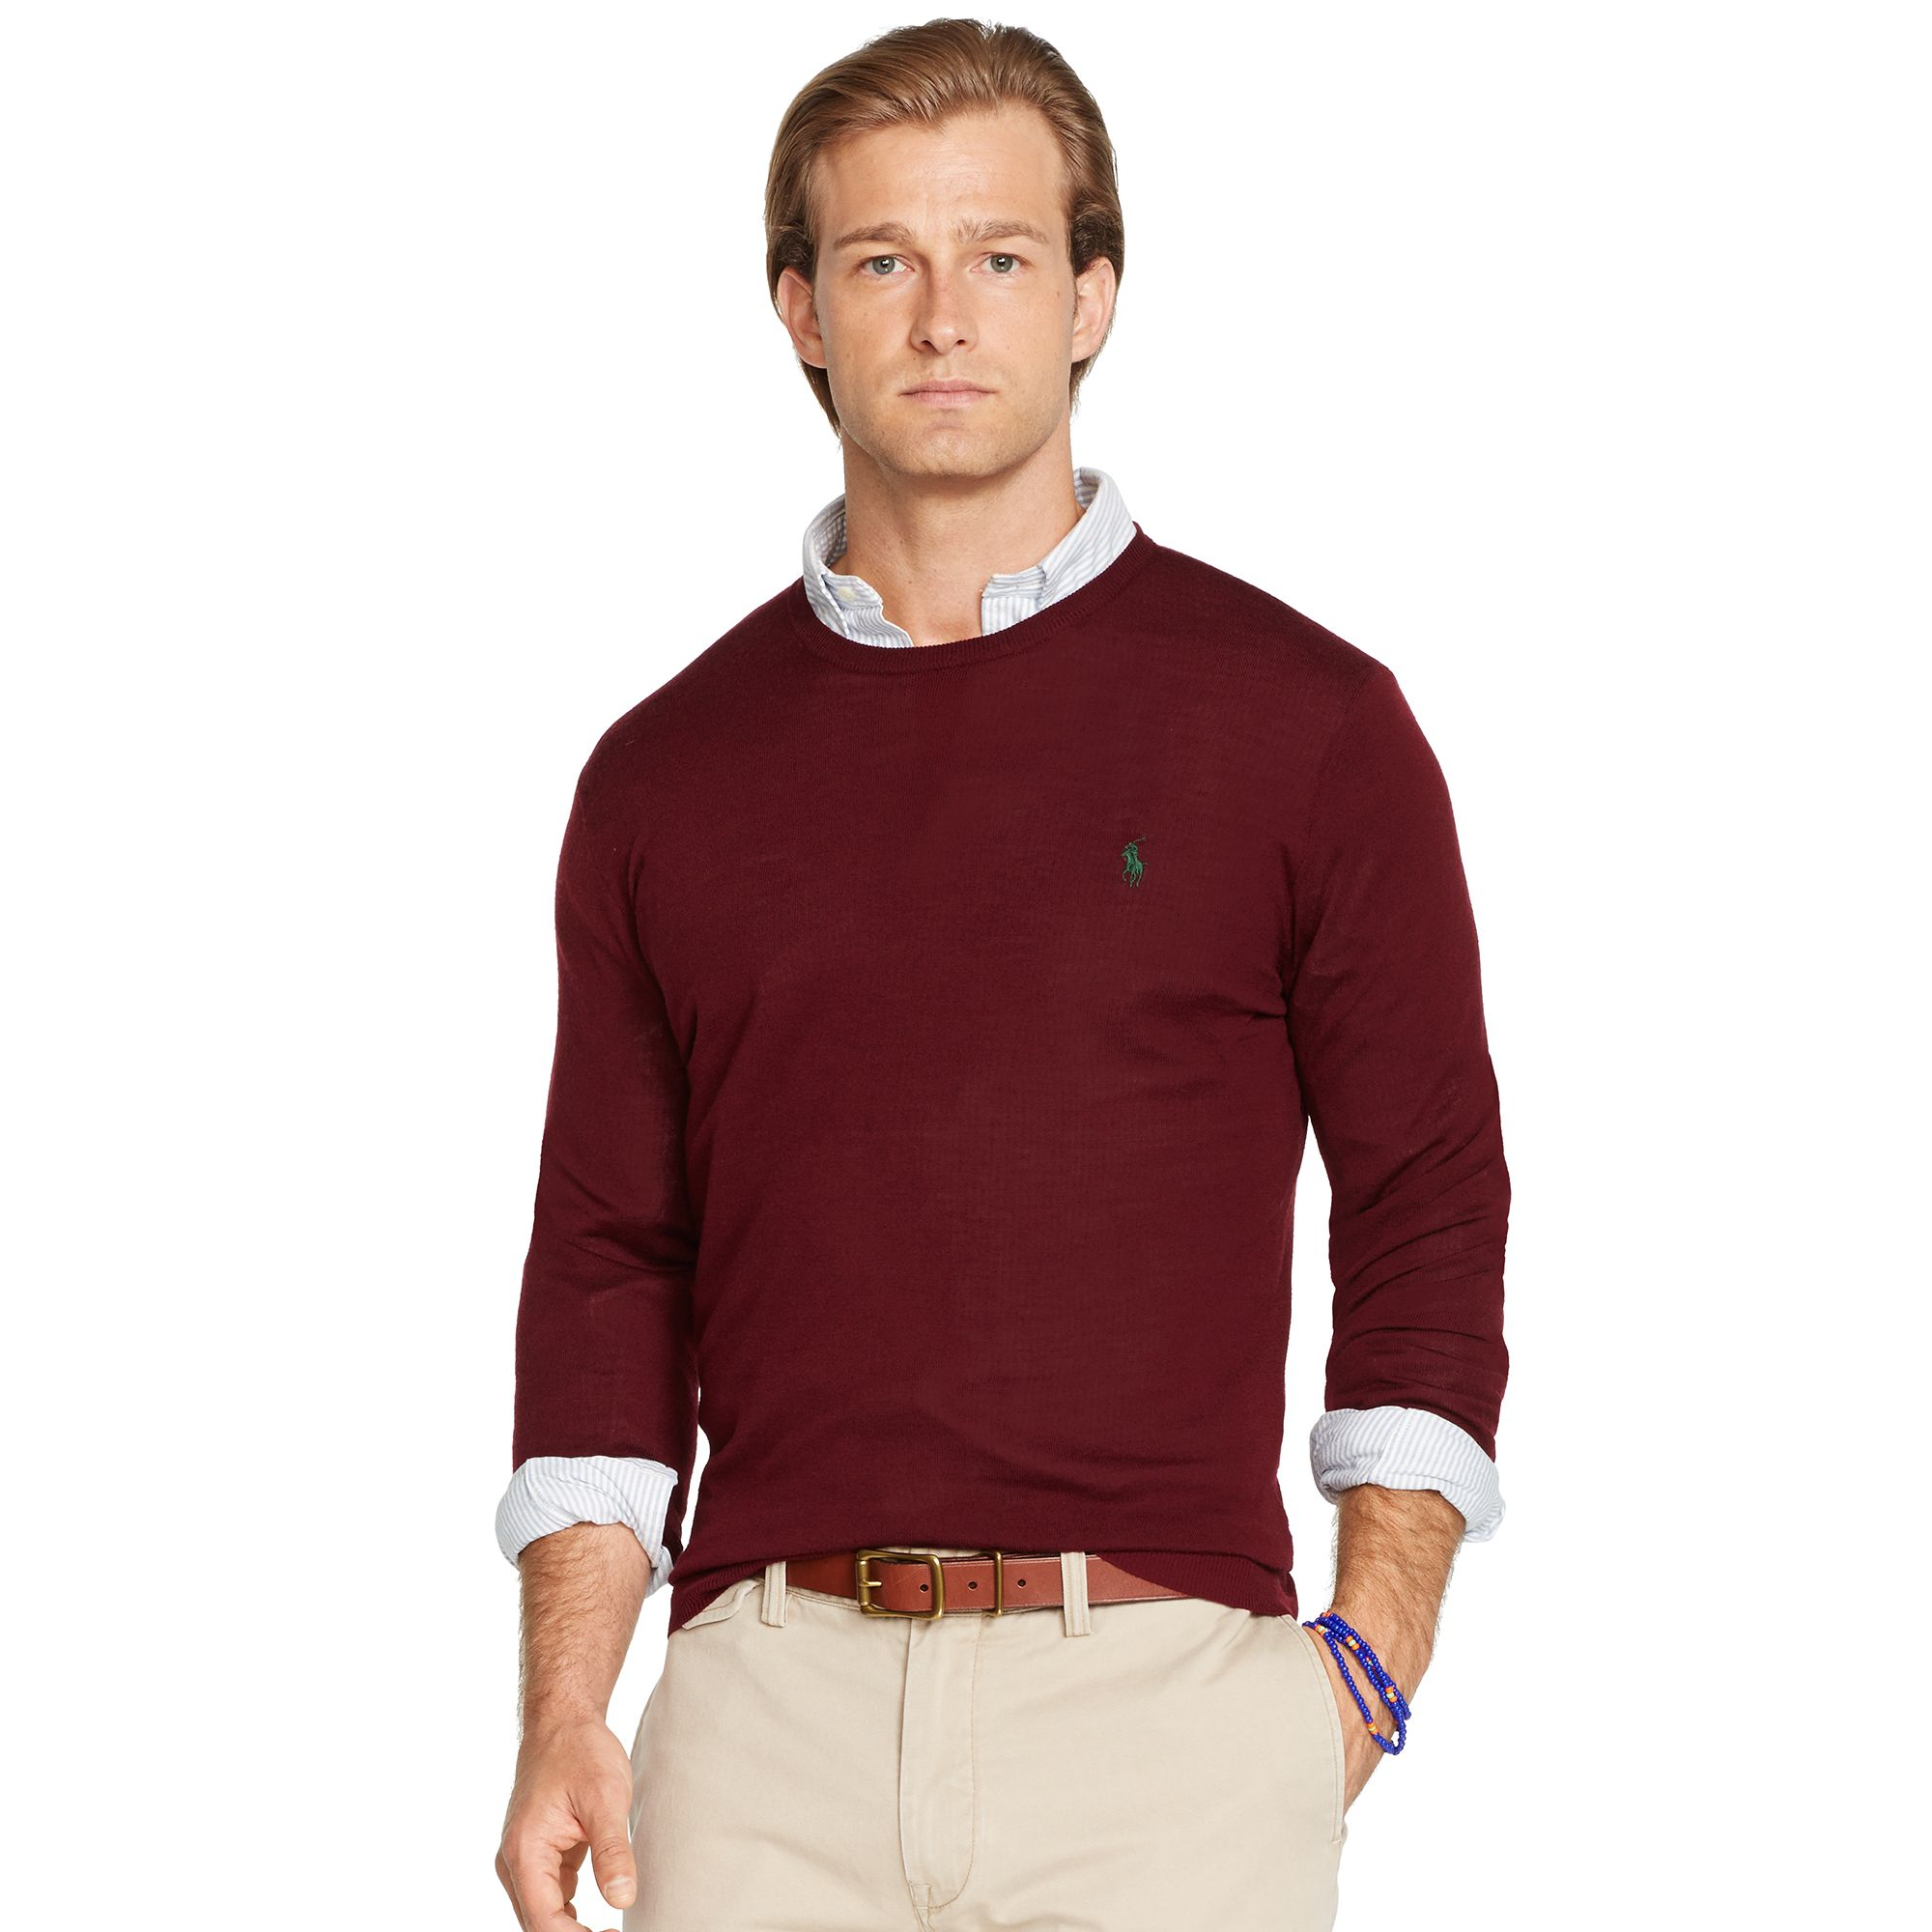 303c8df8a8a Polo Ralph Lauren Slim-Fit Crewneck Sweater in Red for Men - Lyst